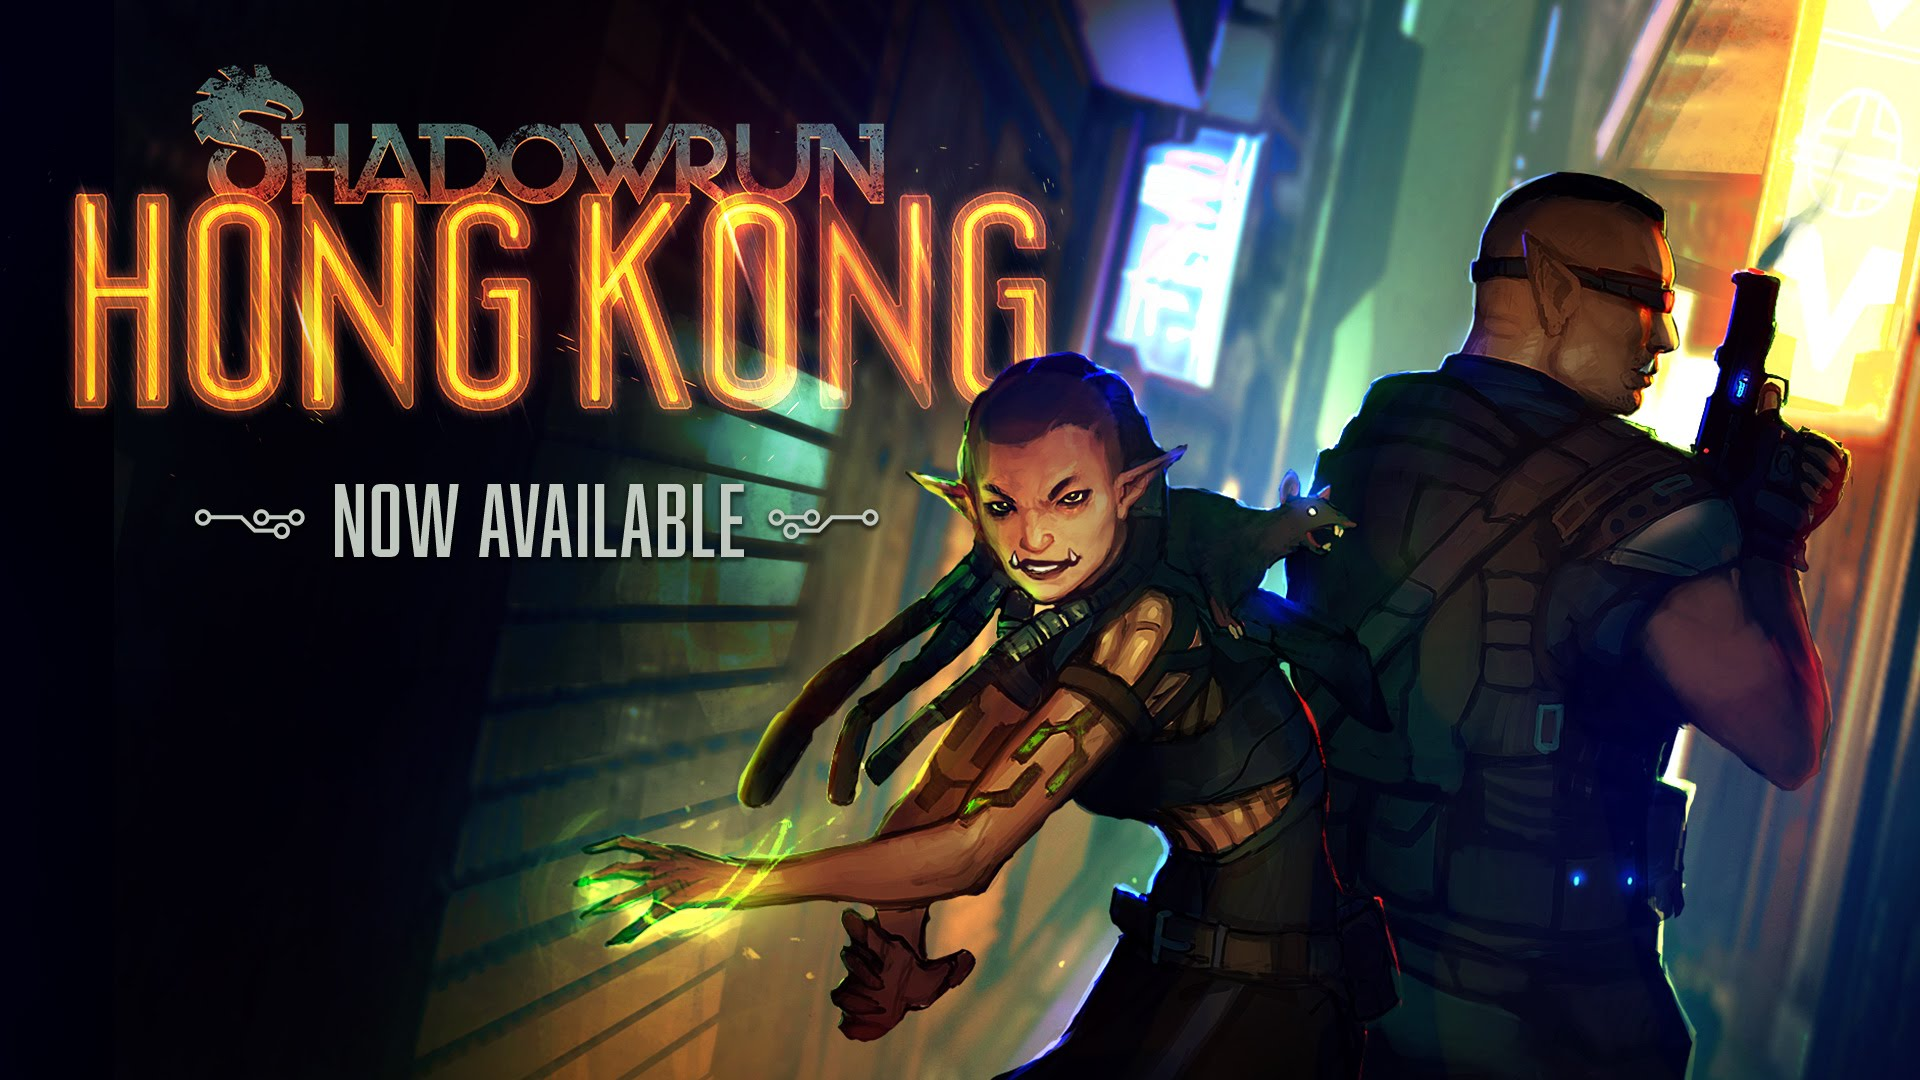 shadowrun-hong-kong-review-pc-489932-2